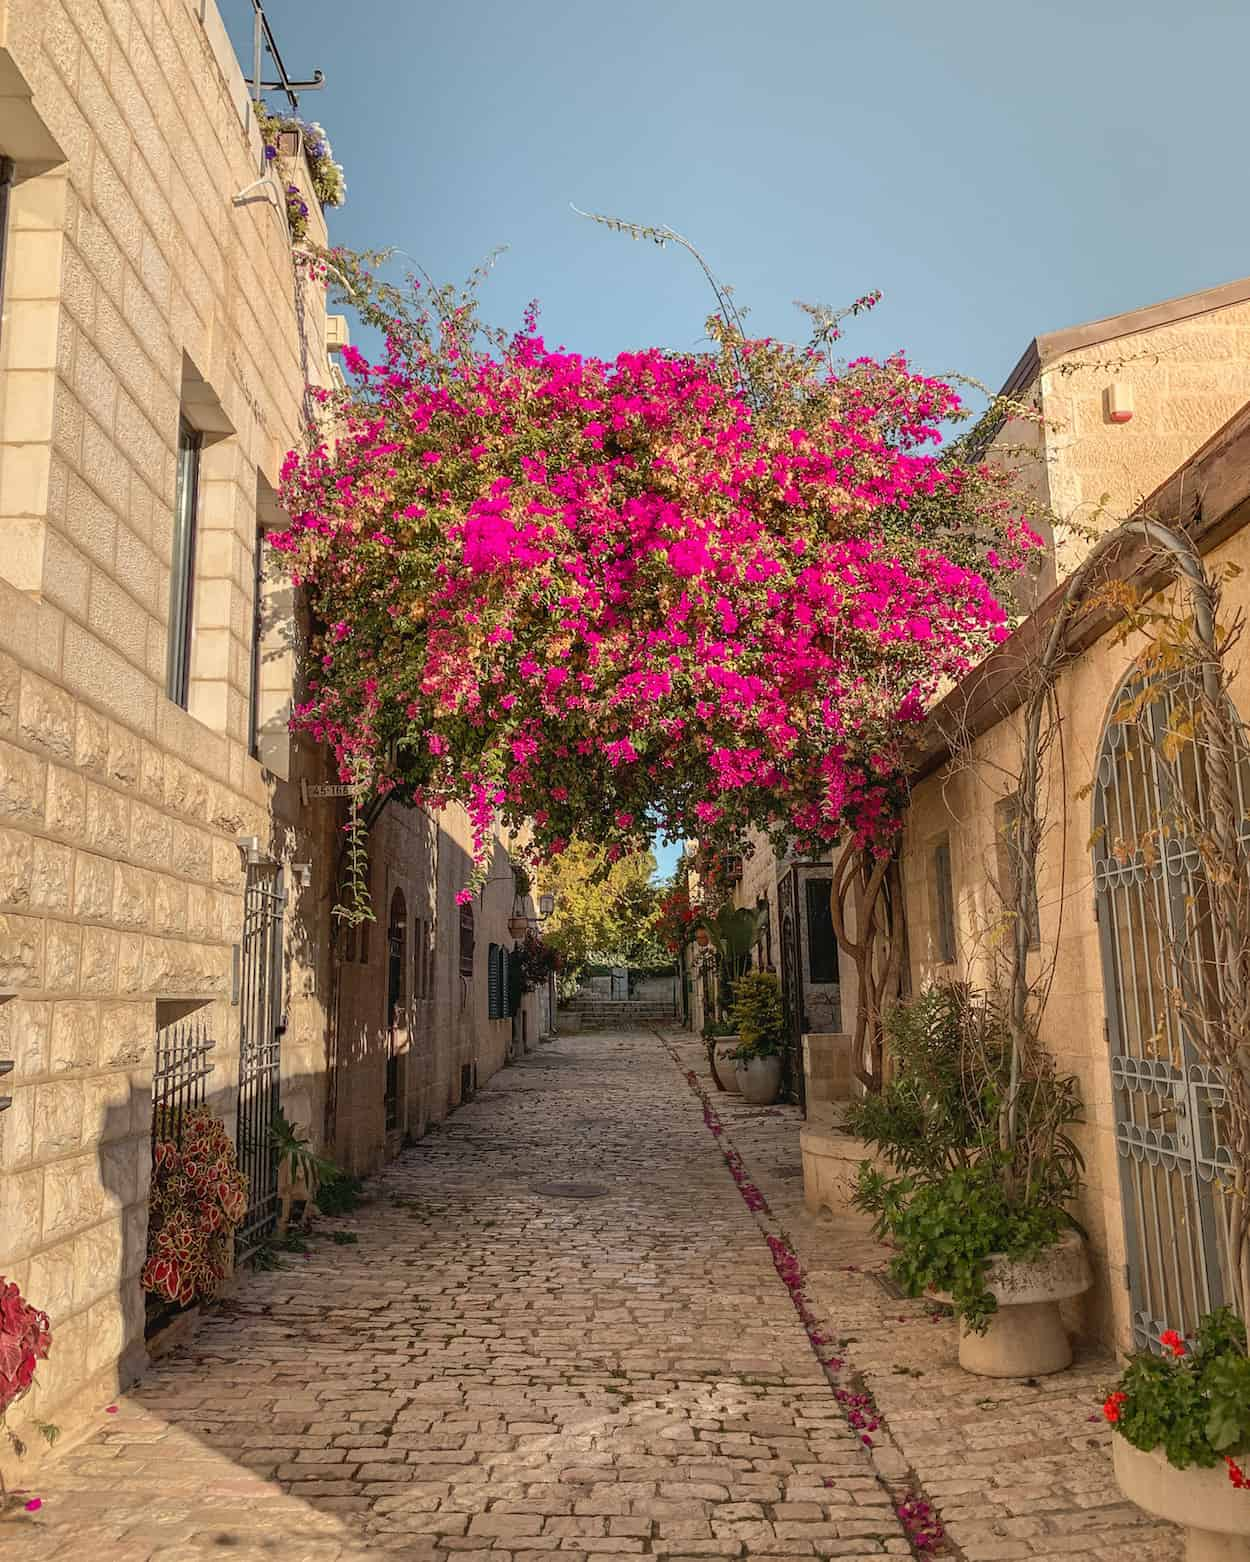 A First Timer's Guide to Israel